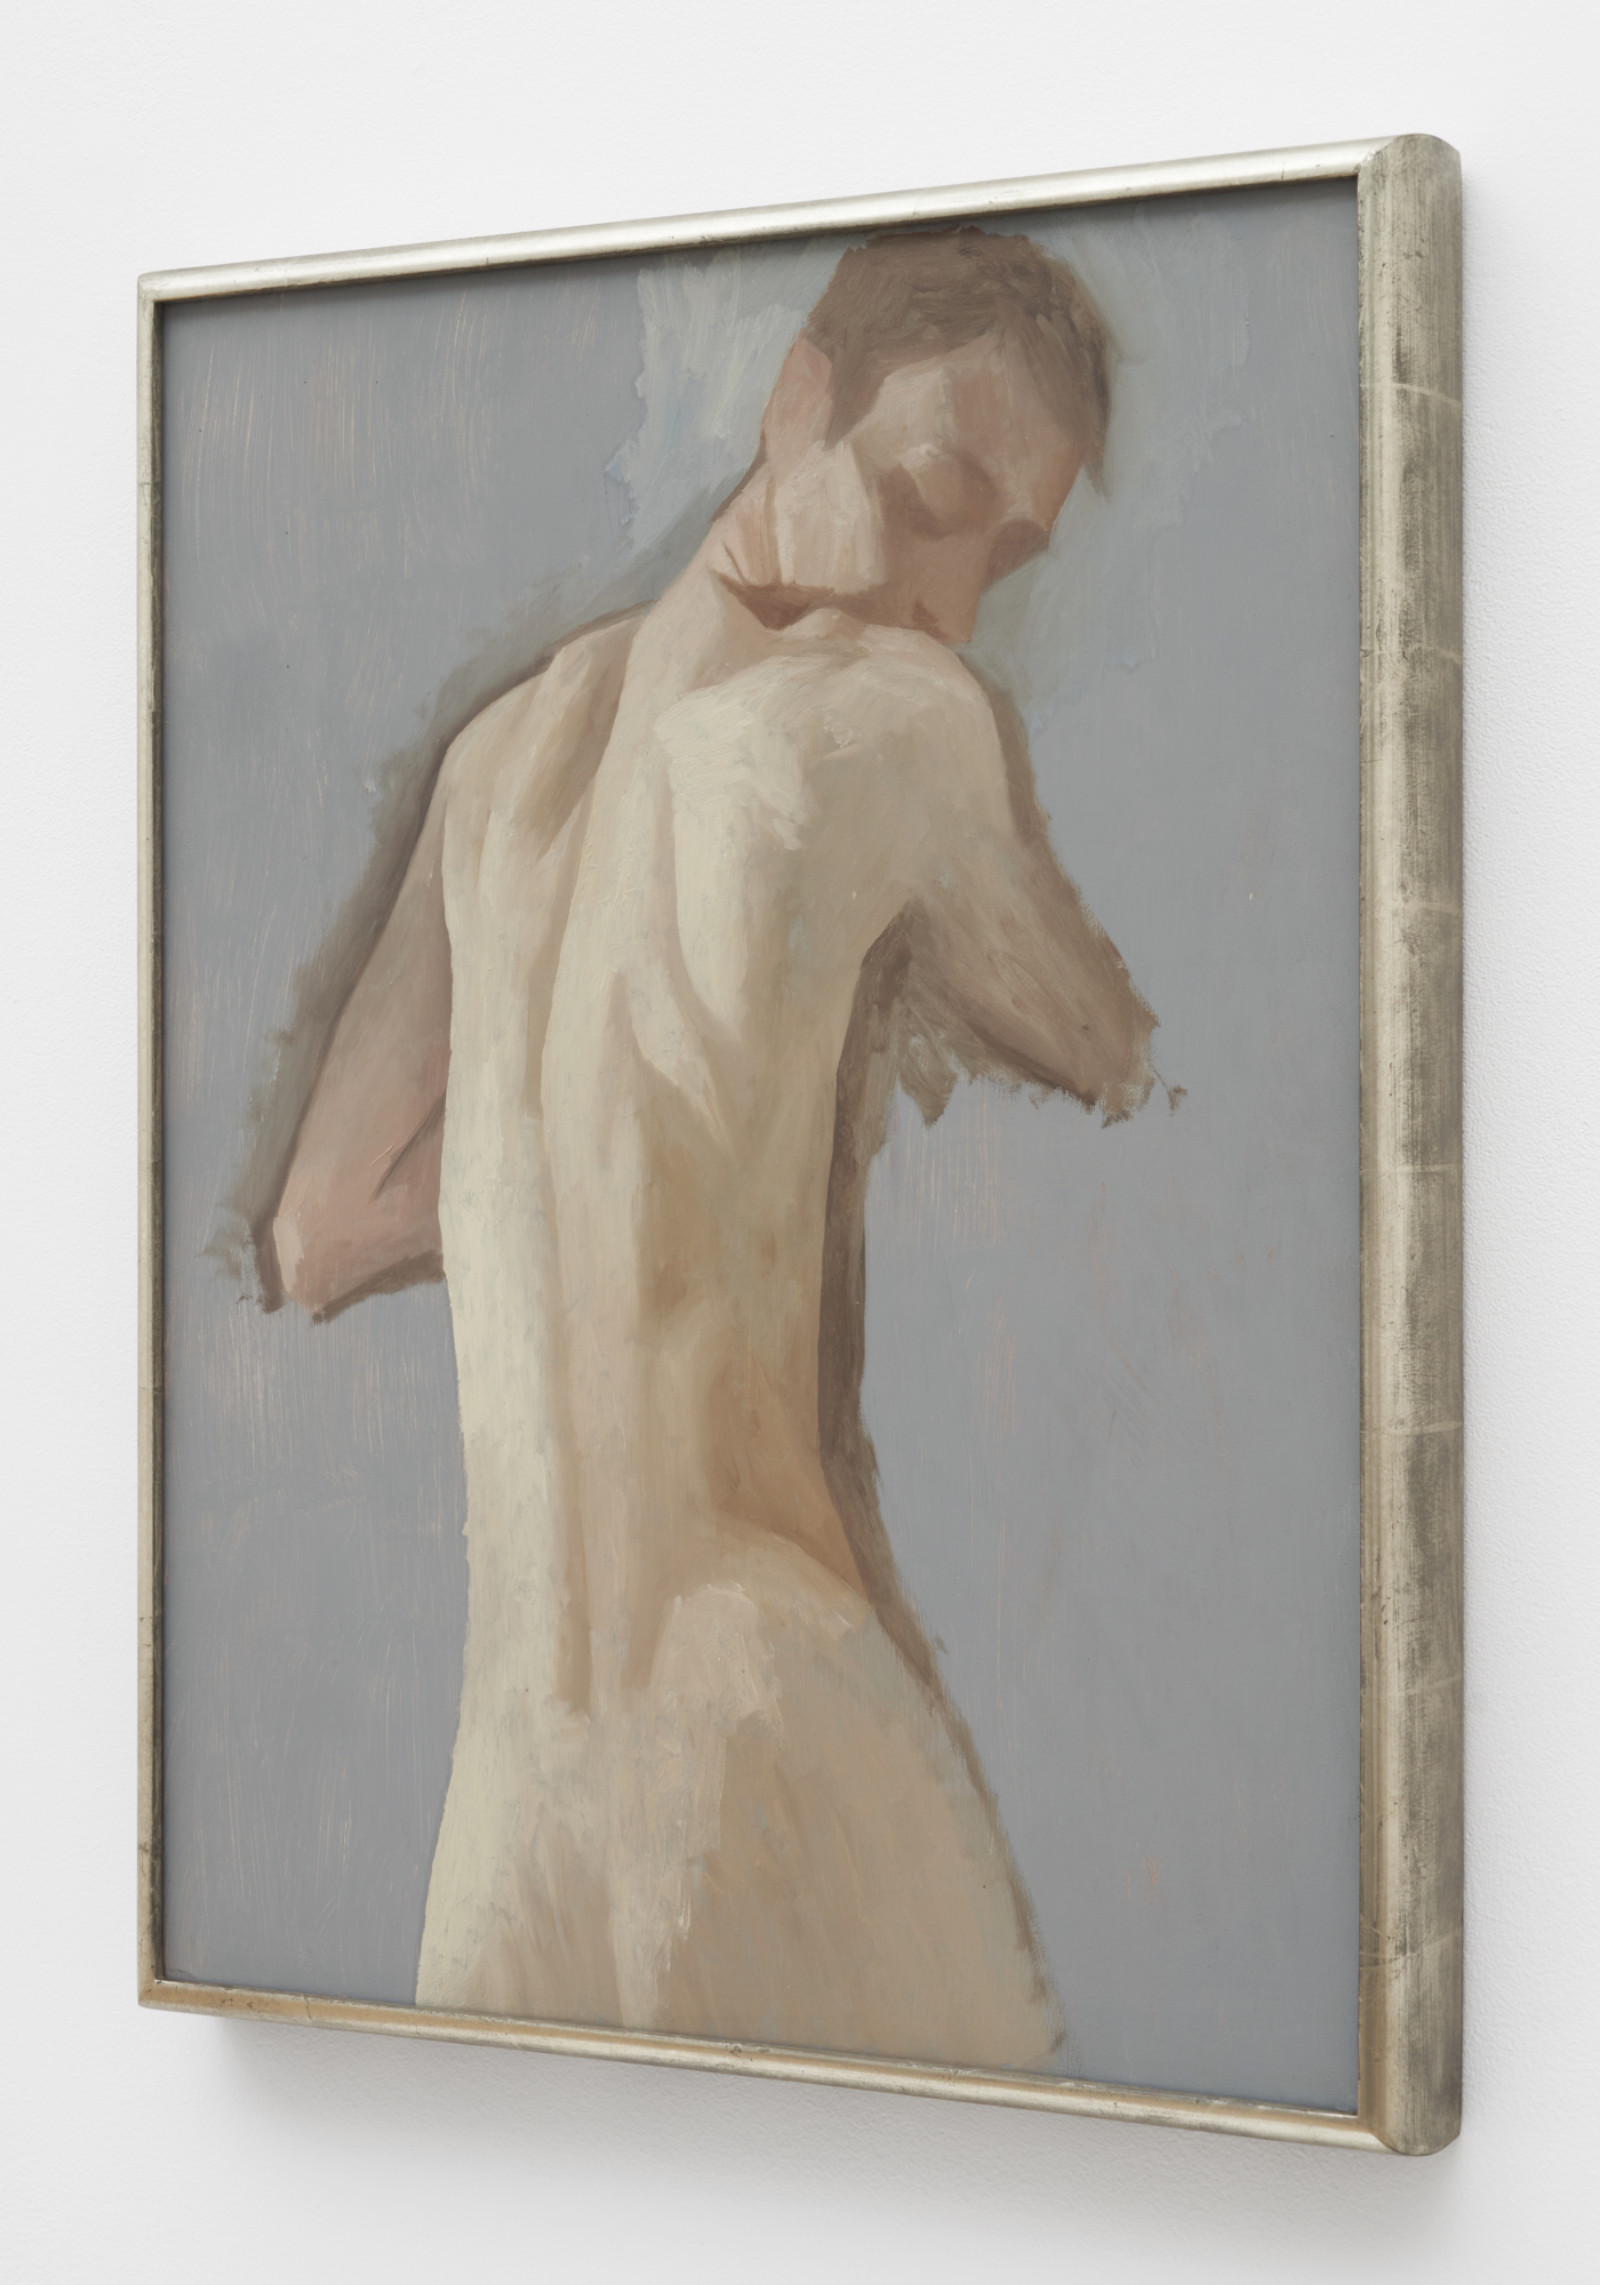 Painting by Julien Nguyen, , dated 2020